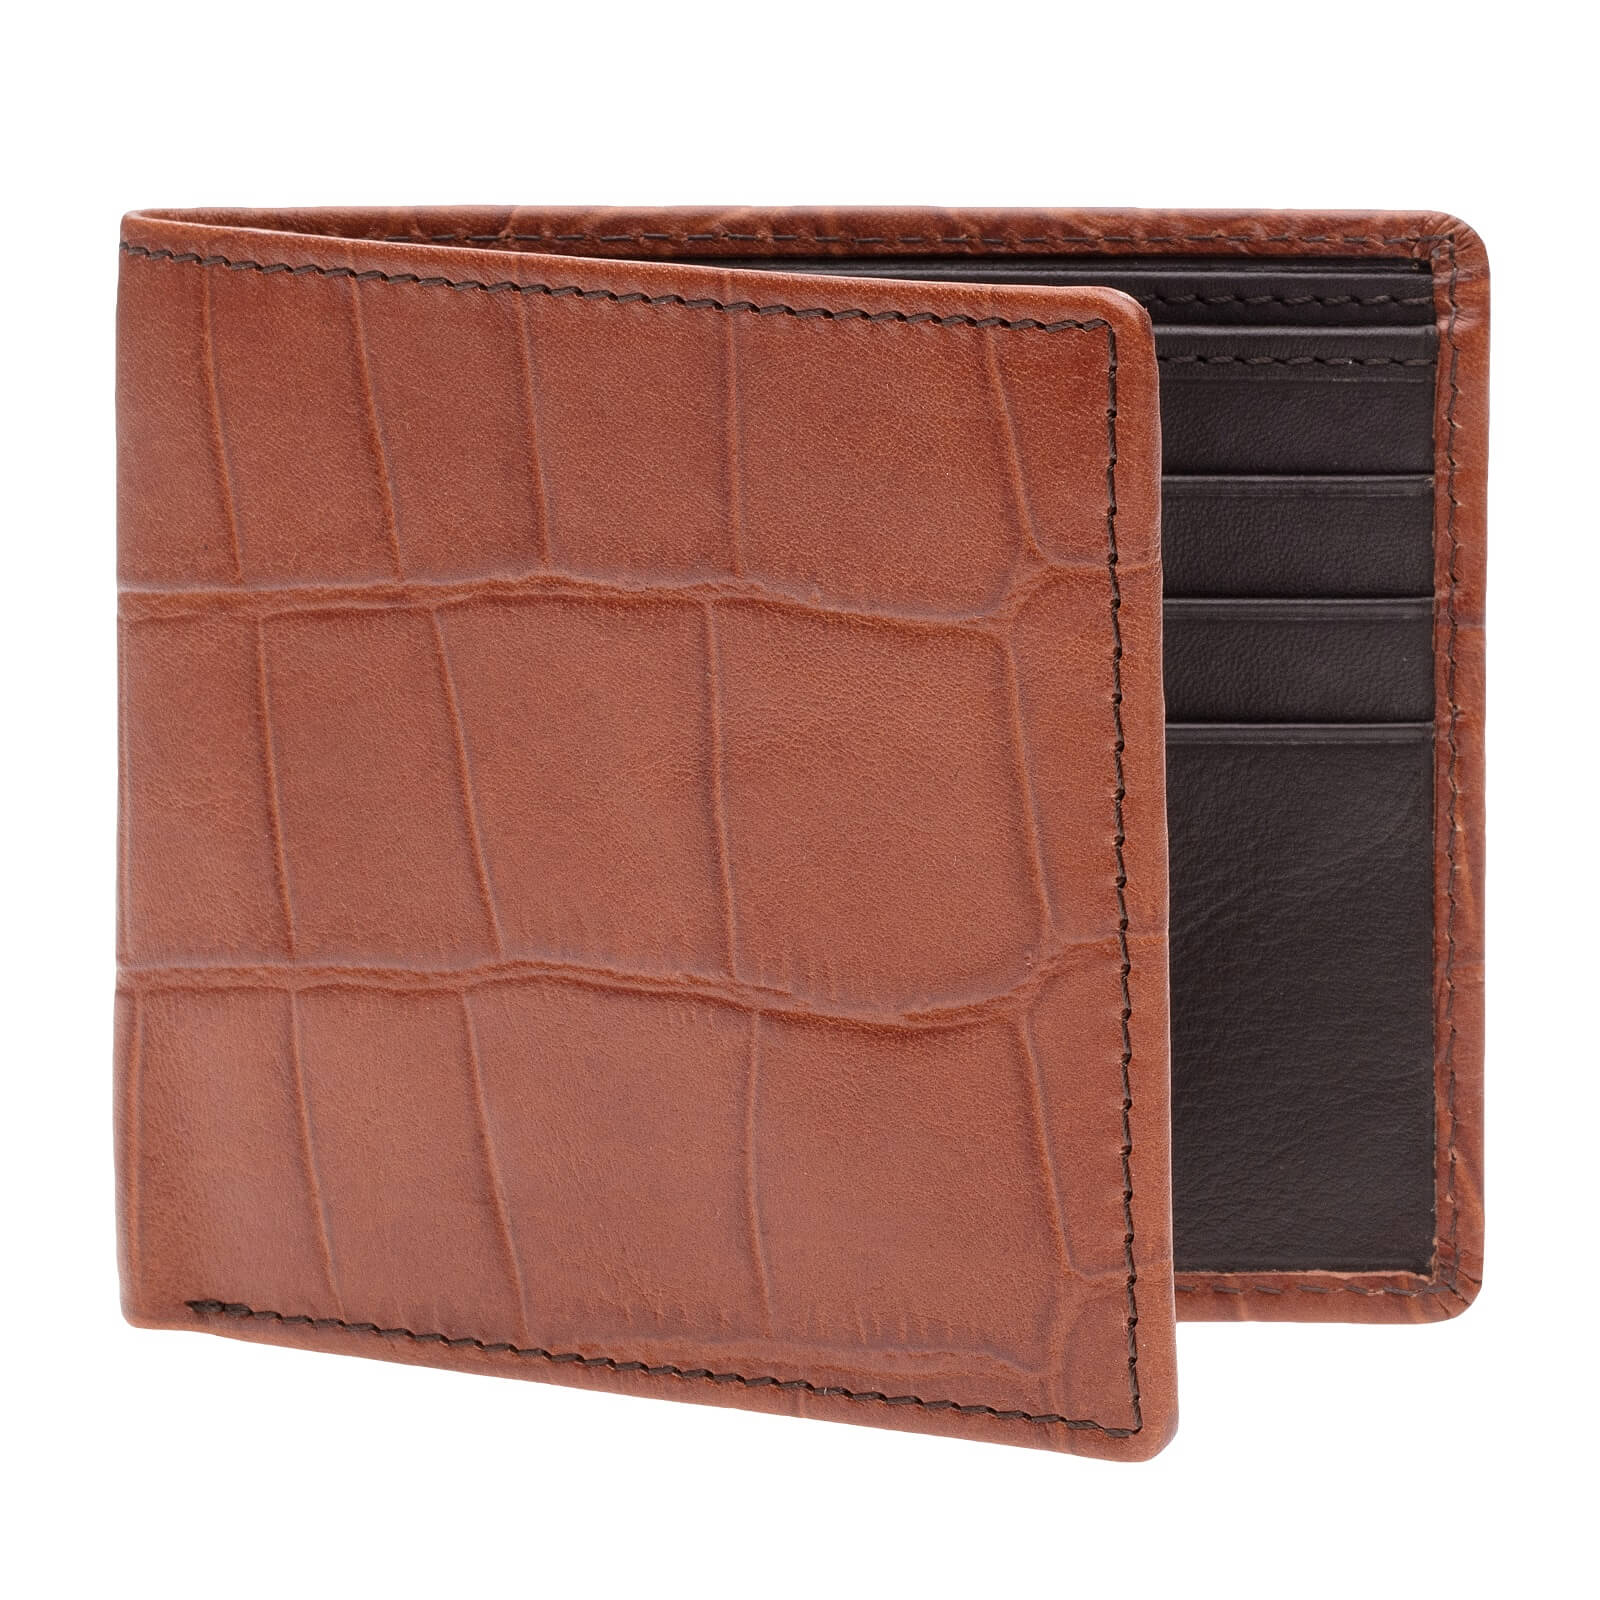 Scotch Mock Gator Vegetable Tan Leather Wallet - Brown / Brown / One Size | Mens Fashion & Leather Goods by Roger Ximenez